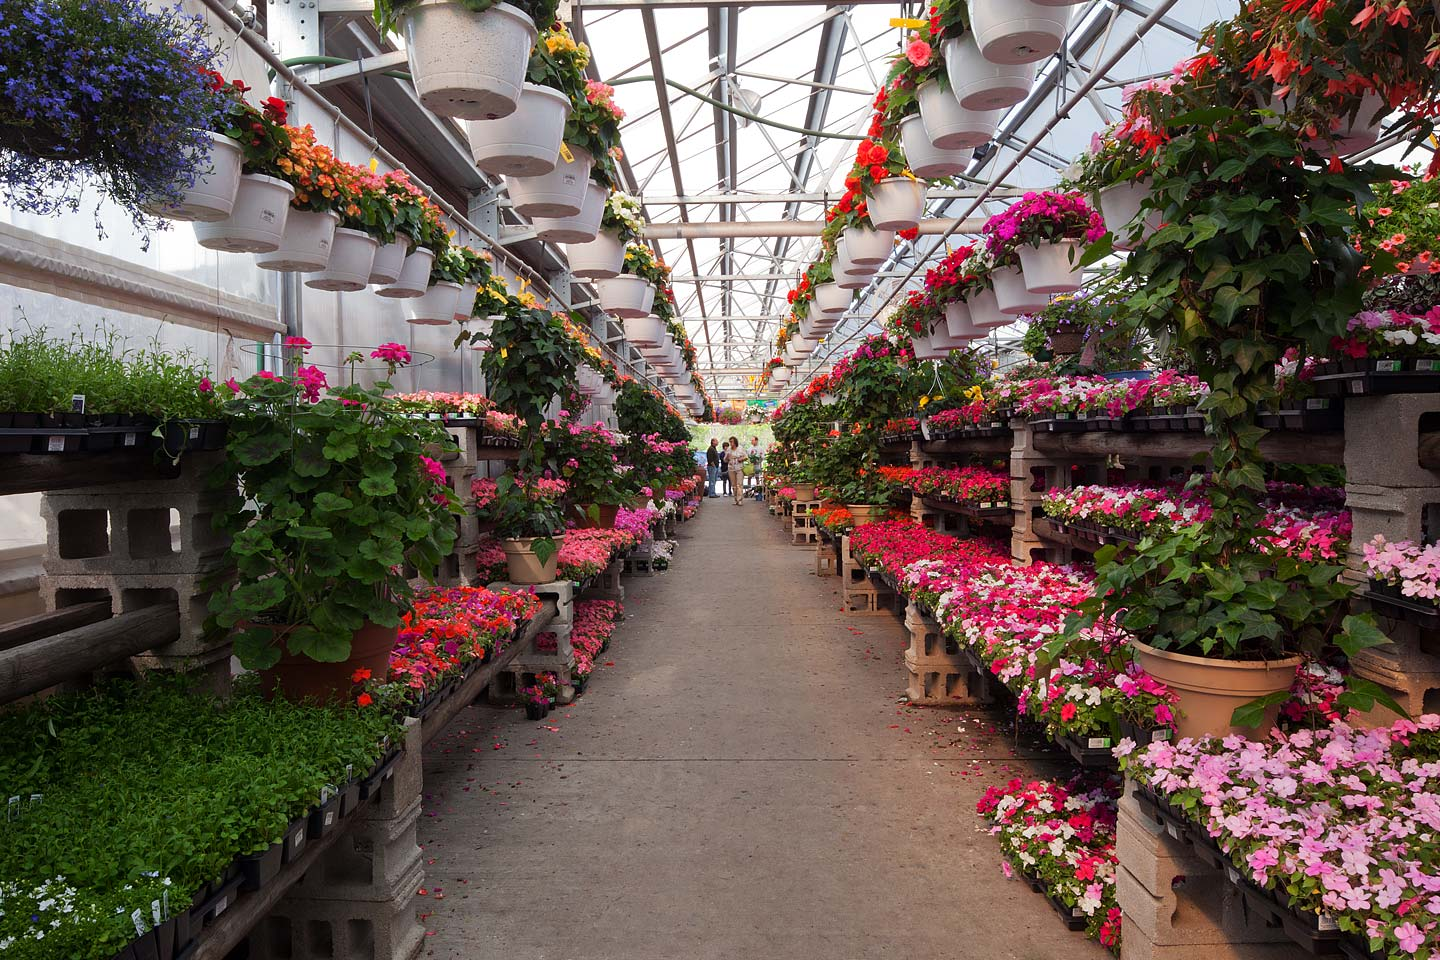 rows of beautiful flats and hanging pots of flowers line the aisles of the antons branch garden center green house